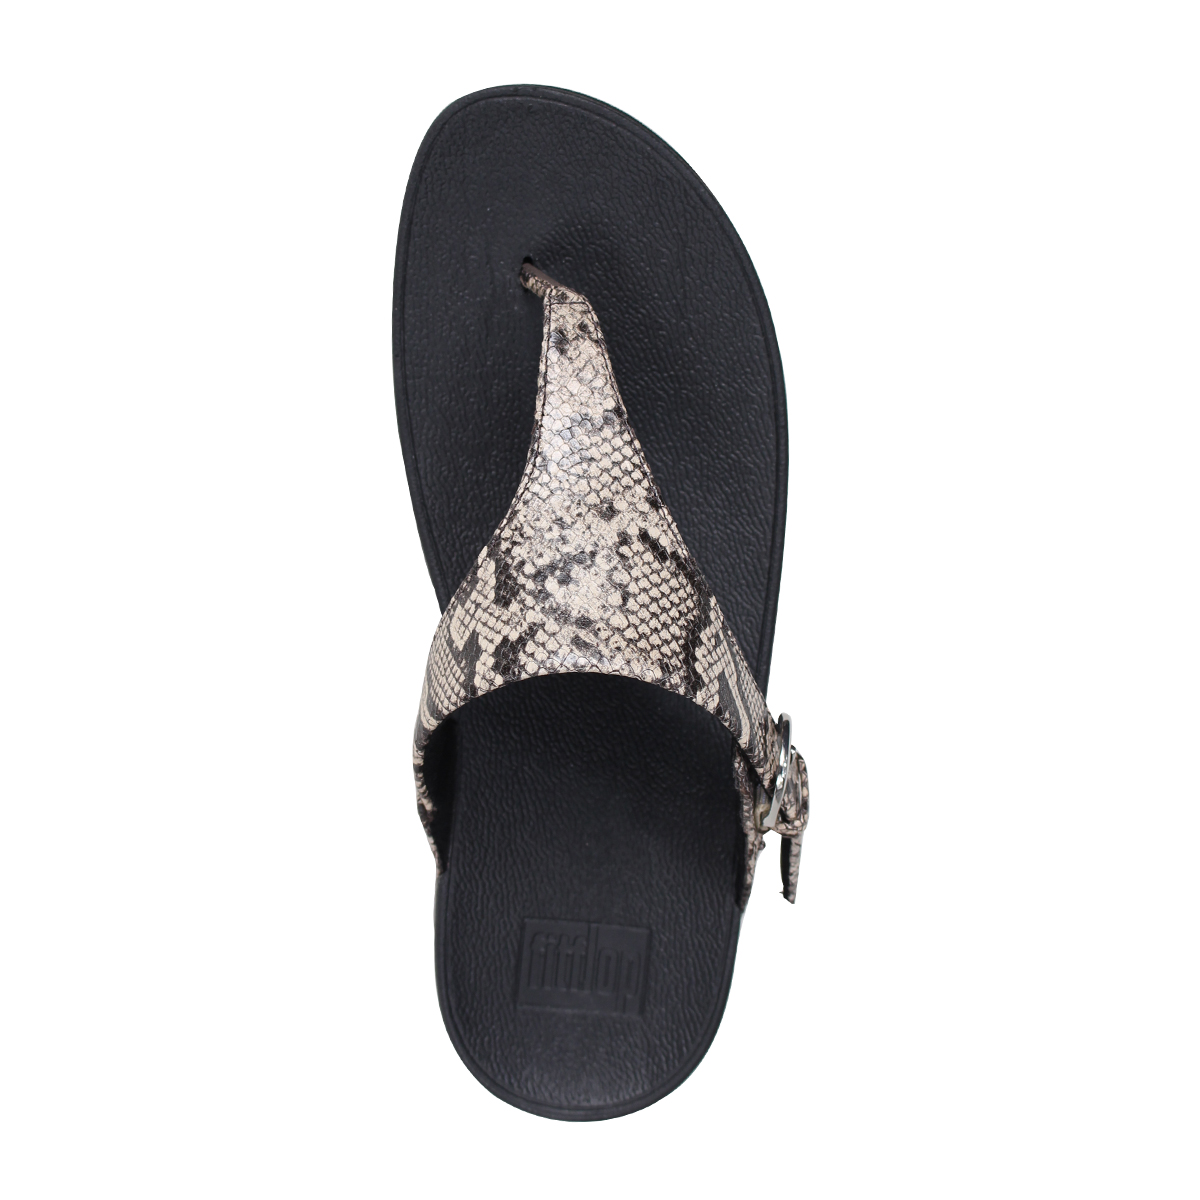 df5afe62d5c1 FitFlop SKINNY TOE-THONG SANDALS SNAKE PRINT LEATHER sandals fitting FLOPS  Kinney Lady s L69 black  4 4 Shinnyu load   184